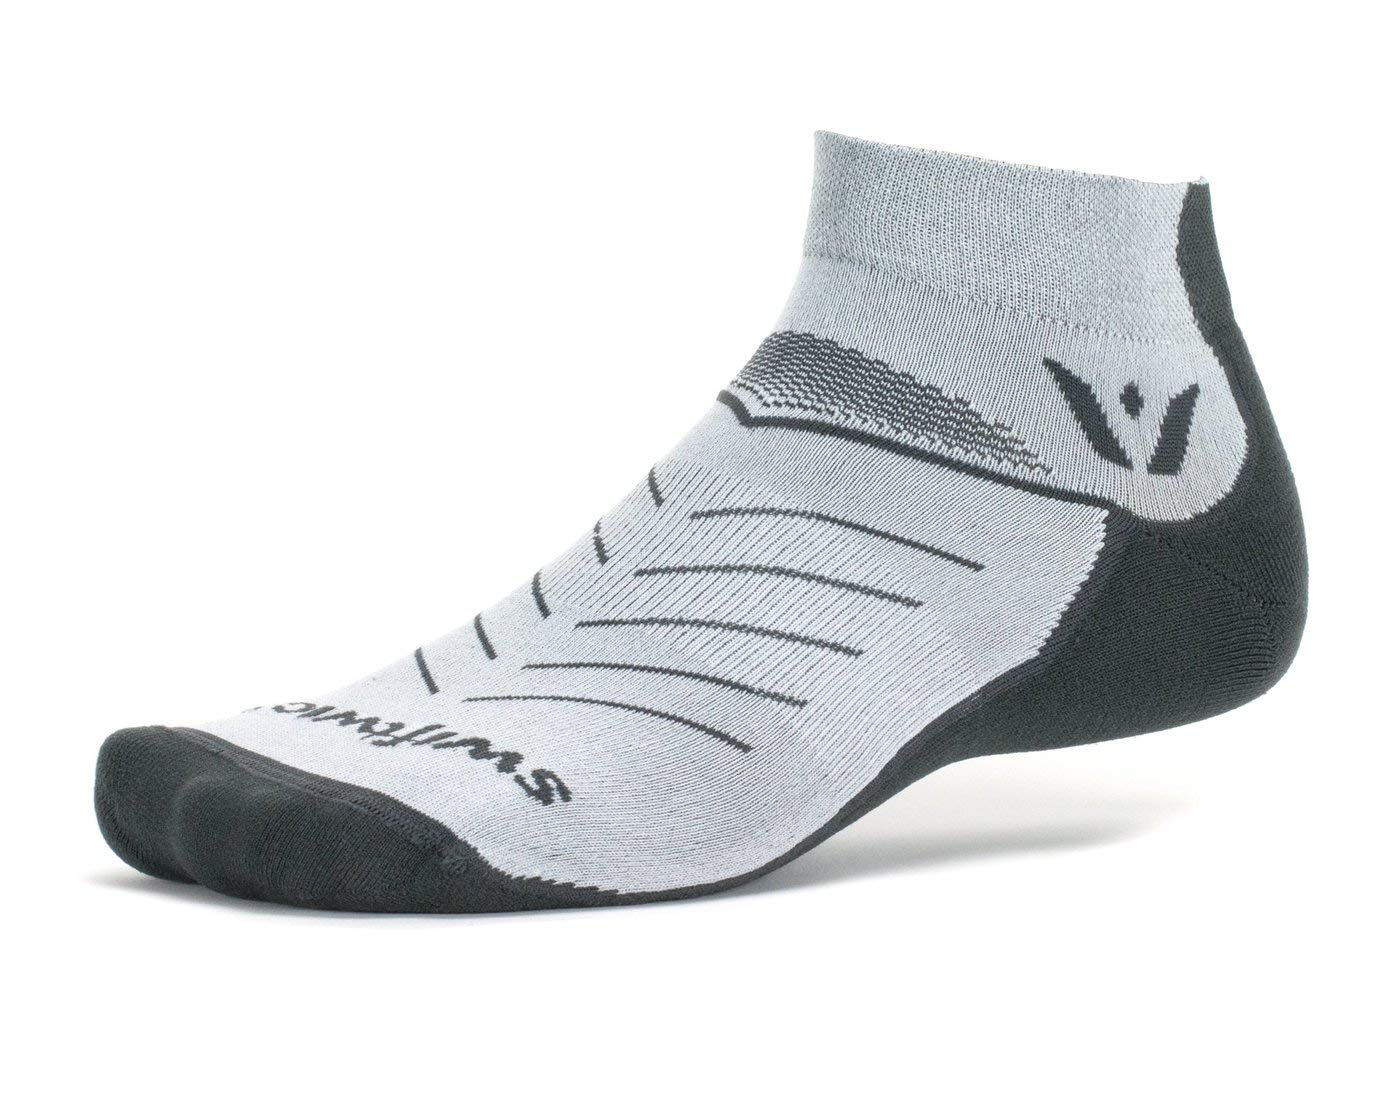 Swiftwick- VIBE ONE | Socks Built for Trail Running, All Day Comfort | Cushioned, Lightweight, Fast Dry Ankle Socks | Gray, Large by Swiftwick